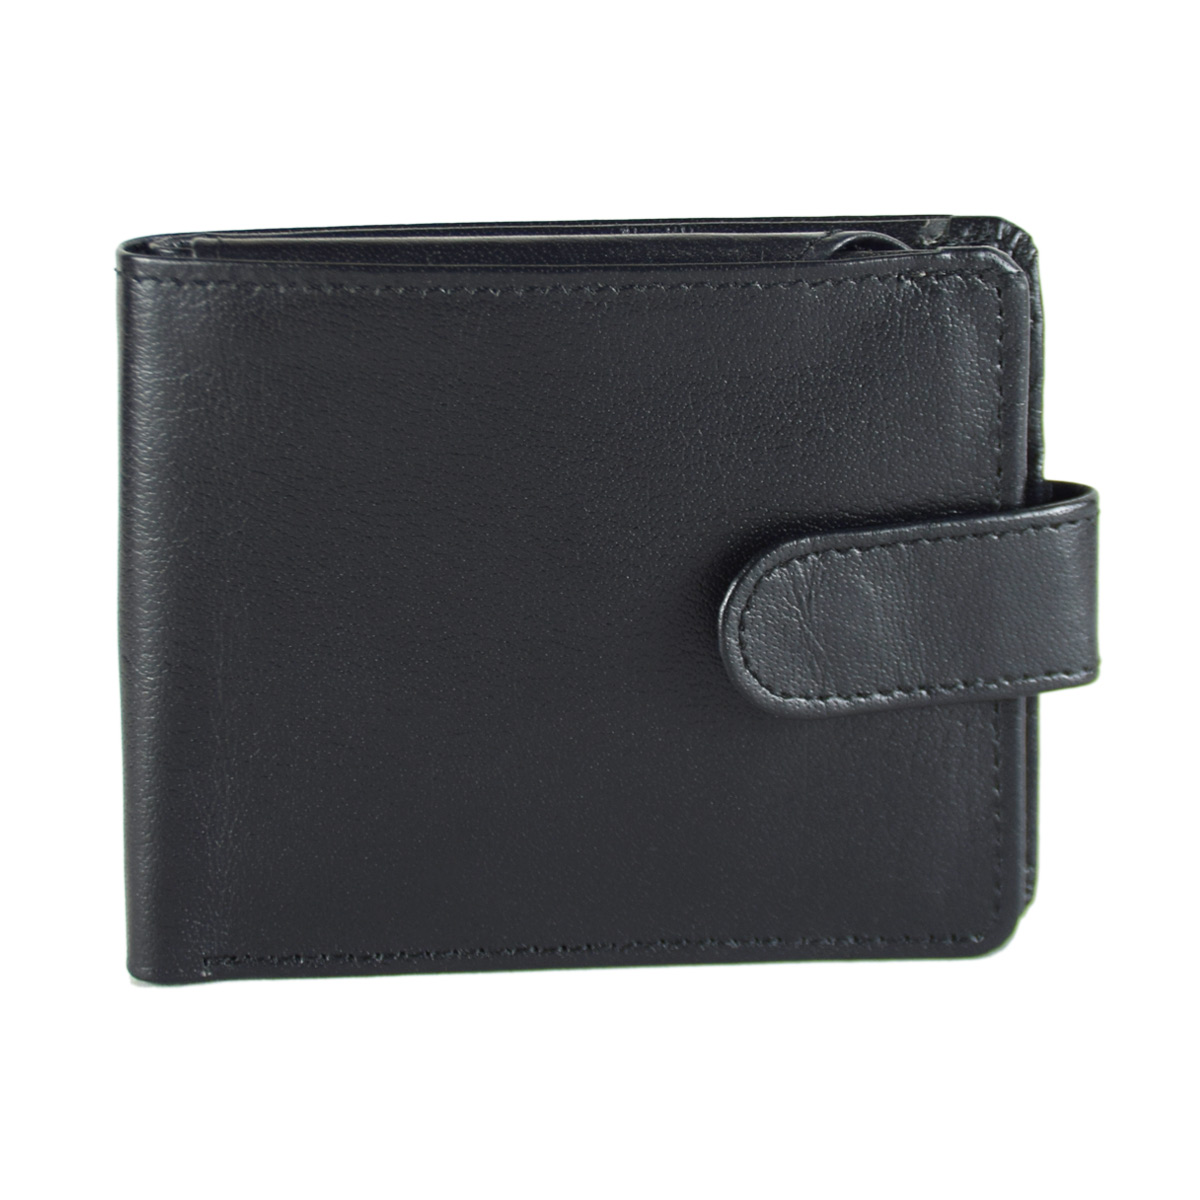 BLACK WALLET WITH TICH BUTTON